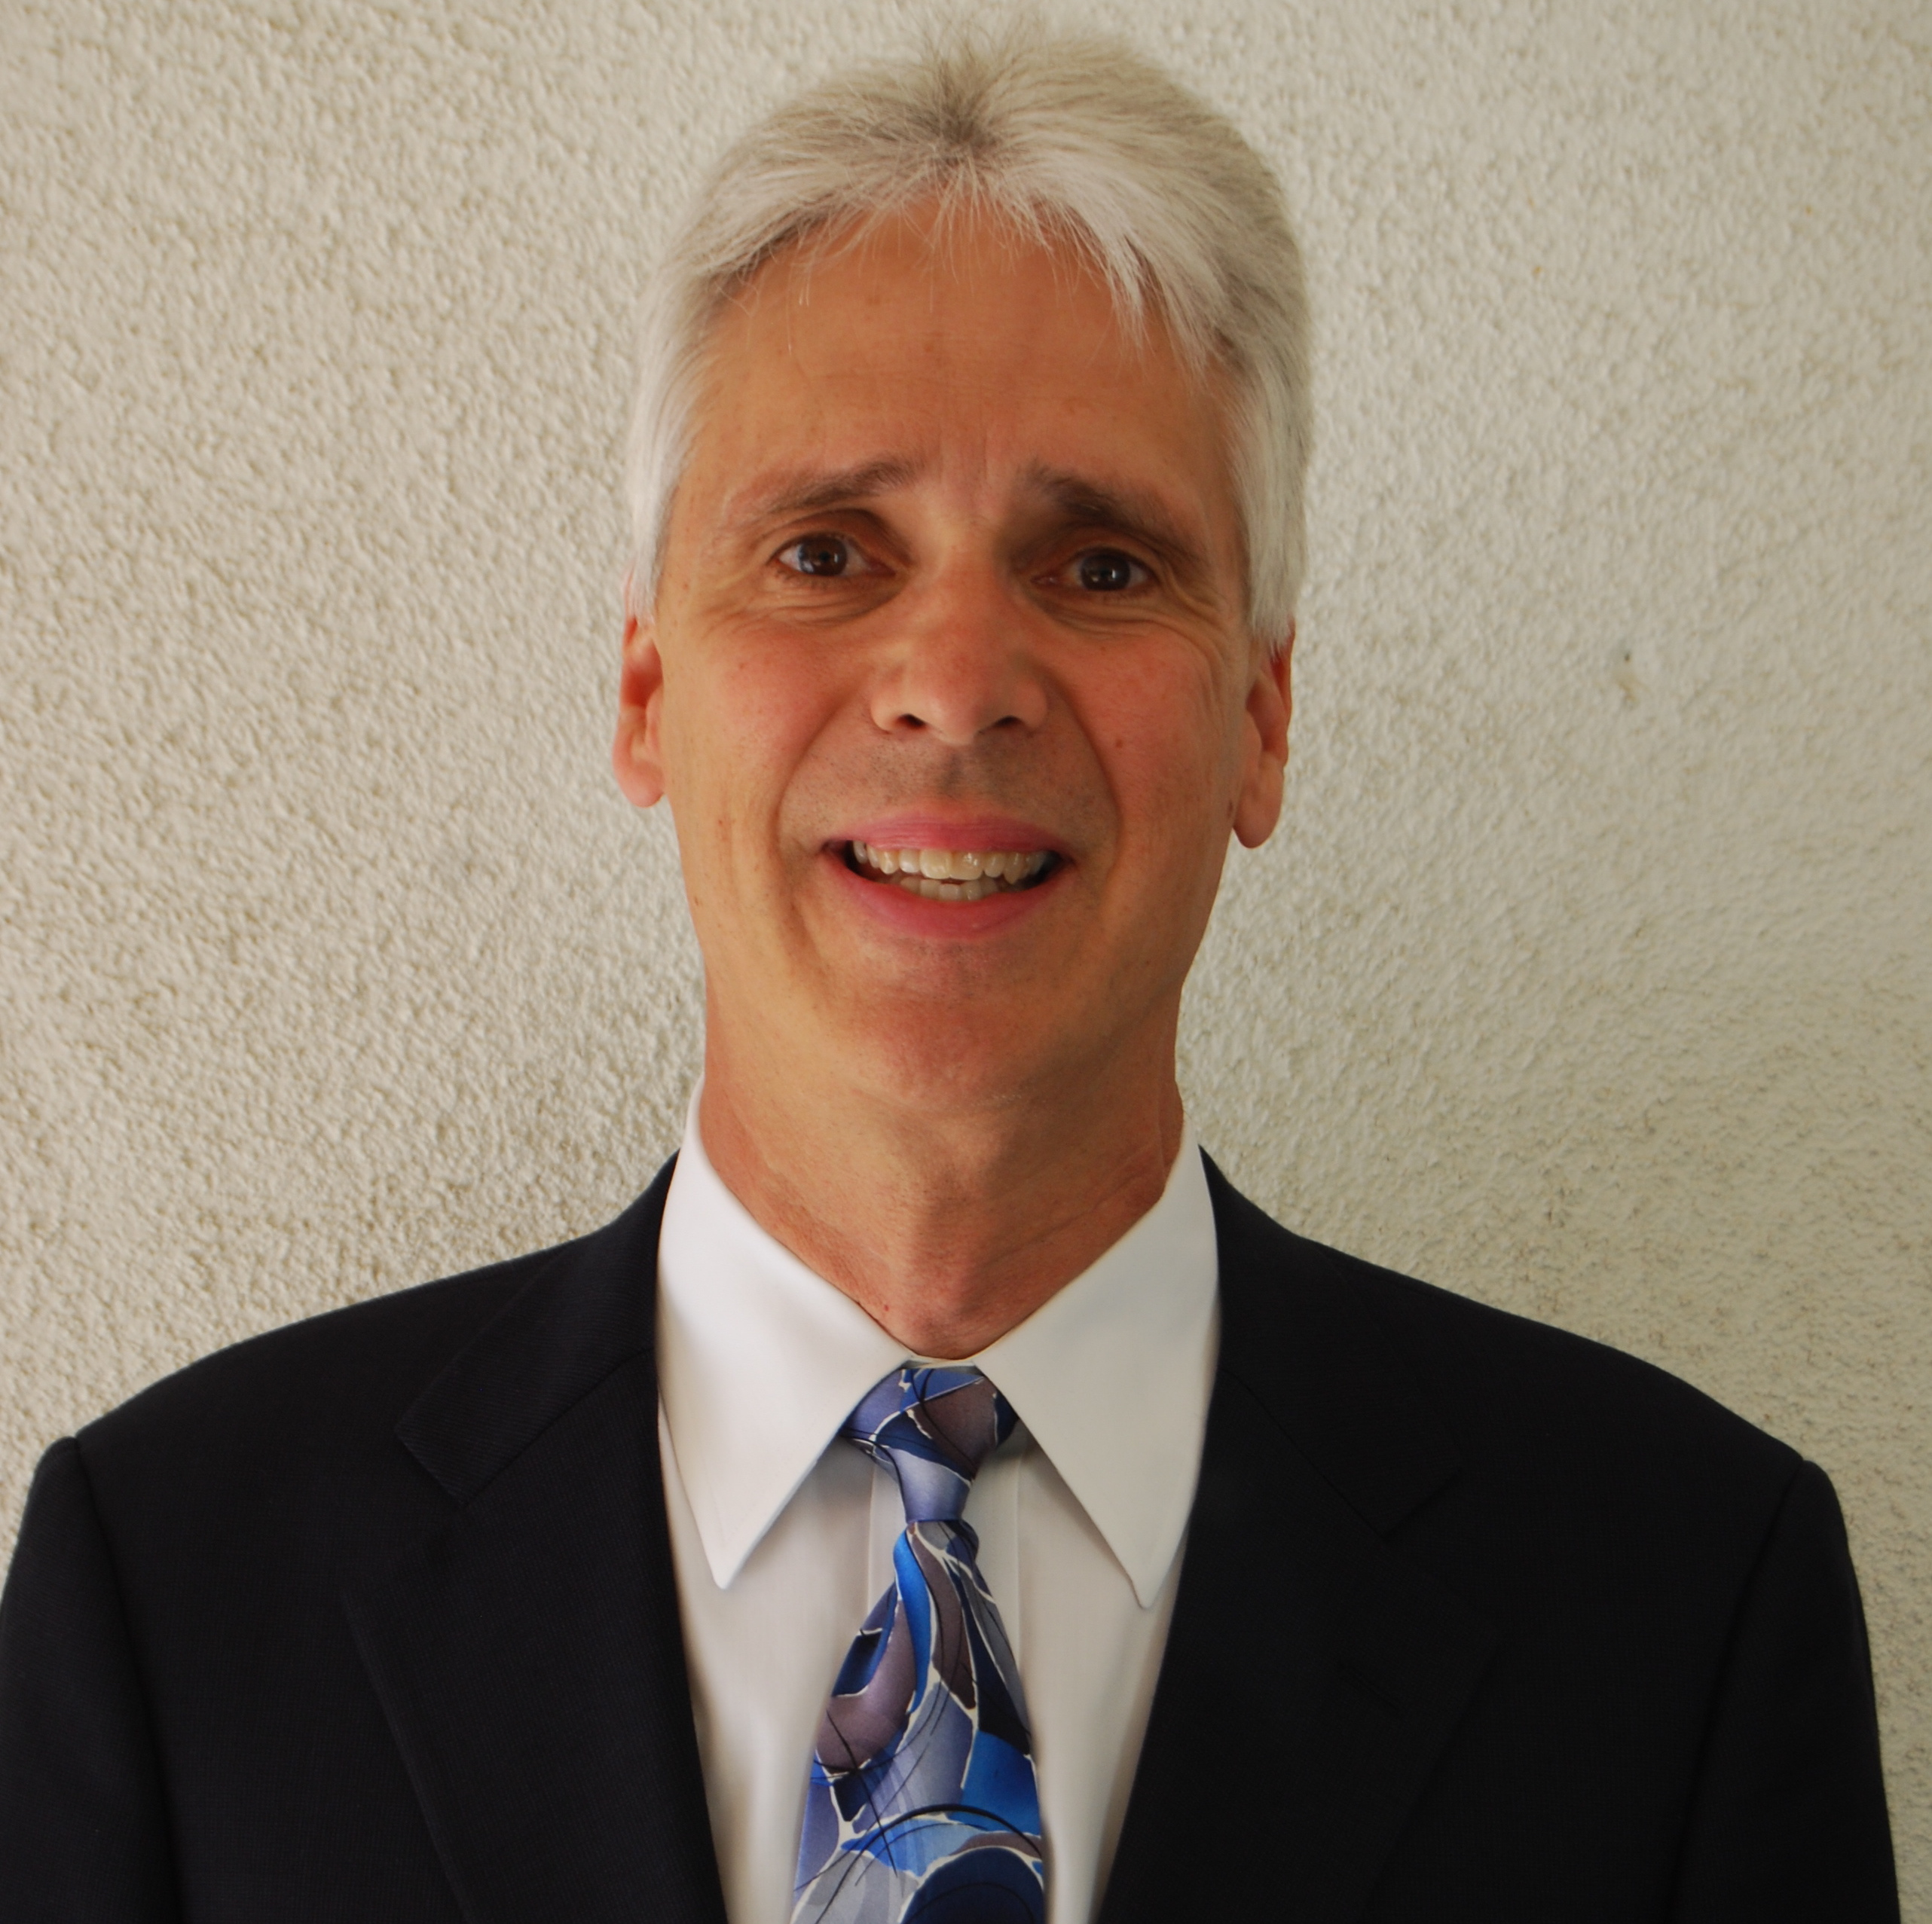 Mark Wolkenhauer, Psy.D., Q.M.E. (Expedient Medicolegal Services)